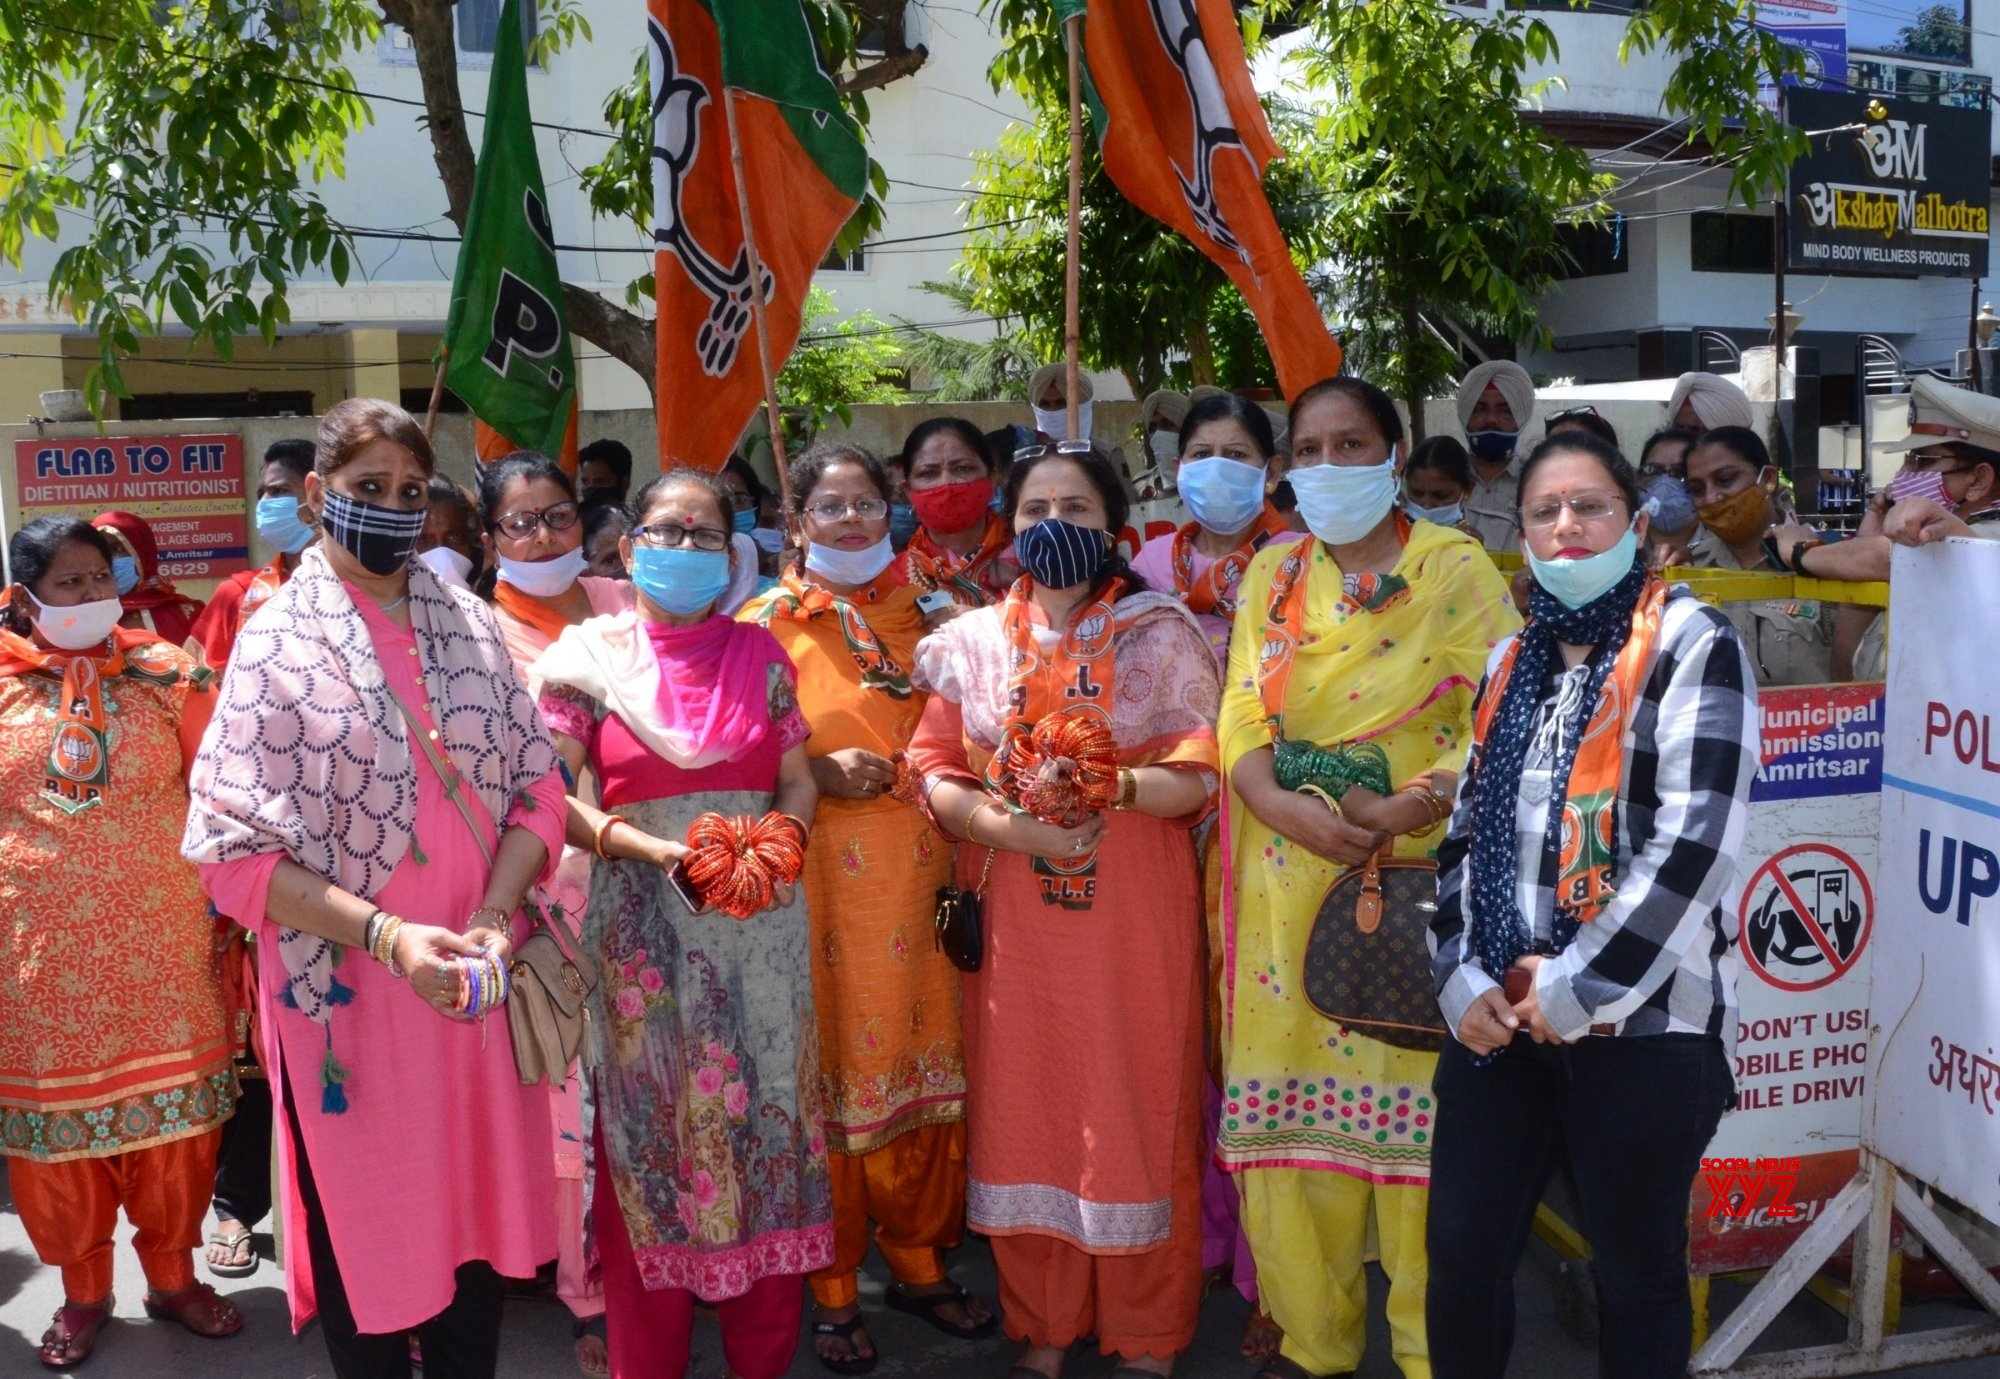 Amritsar: BJP Mahila Morcha activists during a protest against Punjab Government, in Amritsar #Gallery